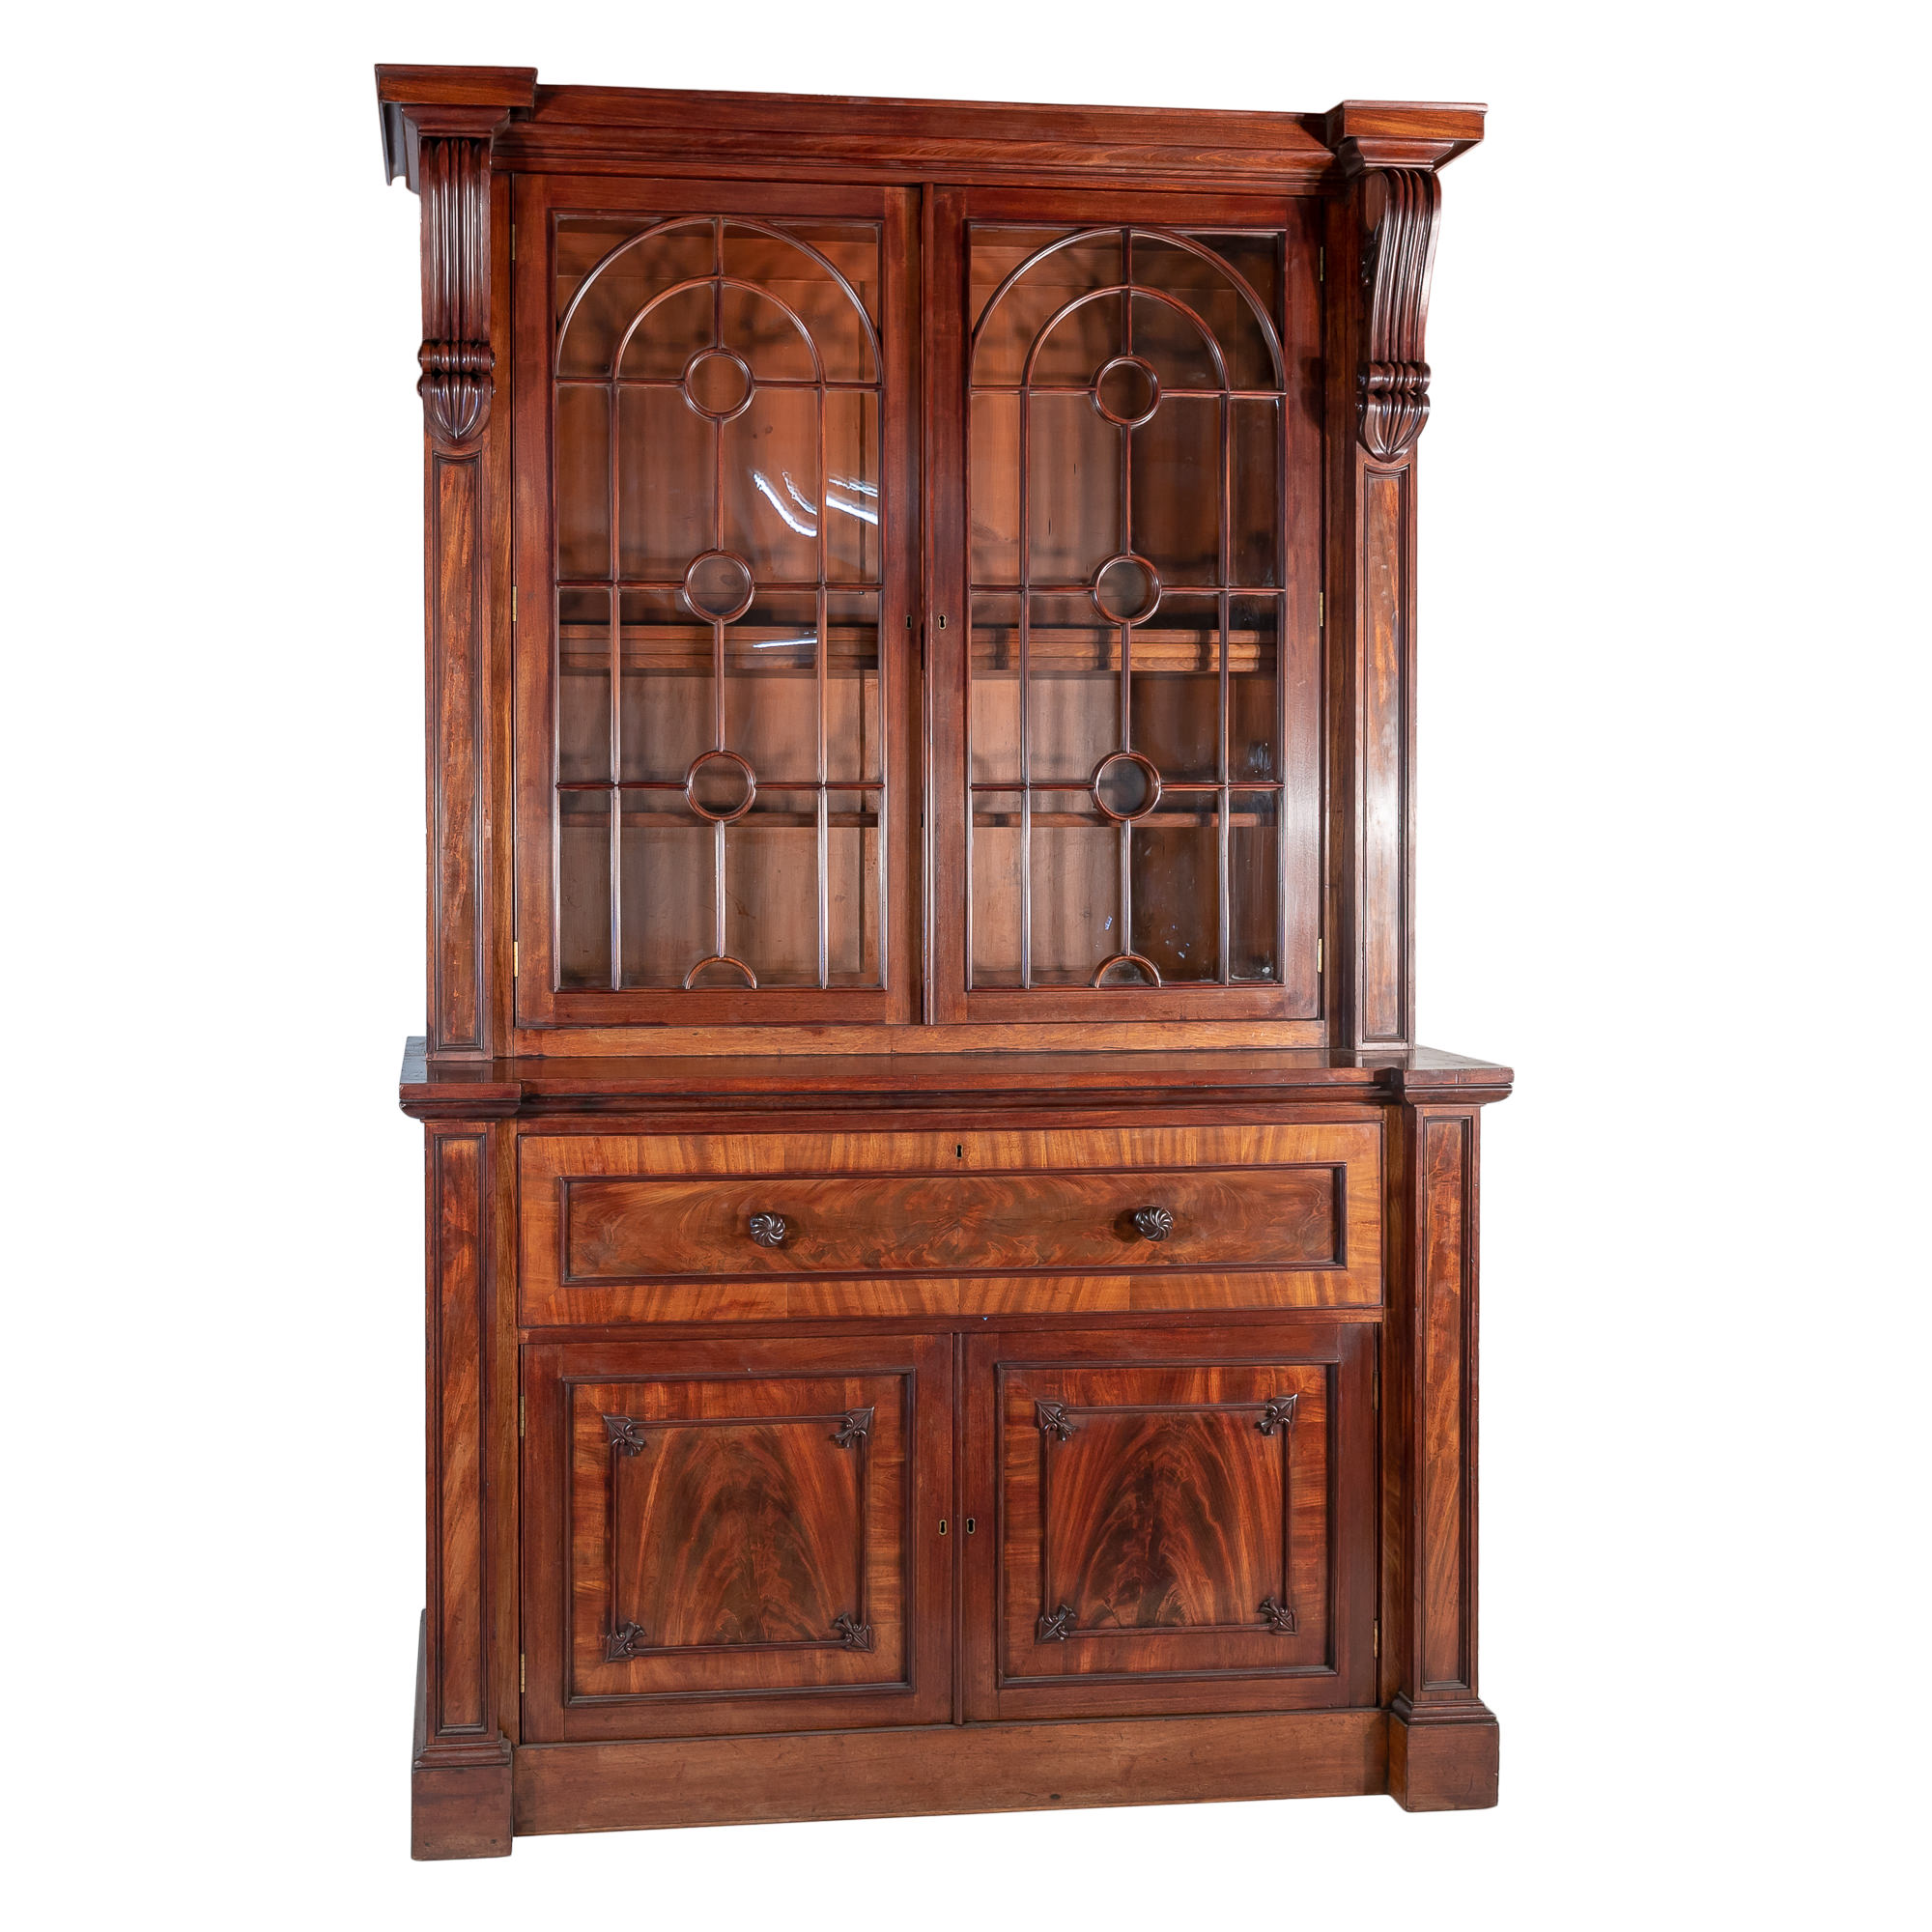 'Massive George IV Archtiectural Mahogany Secretaire Bookcase with Arched Glazed Doors Circa 1830'